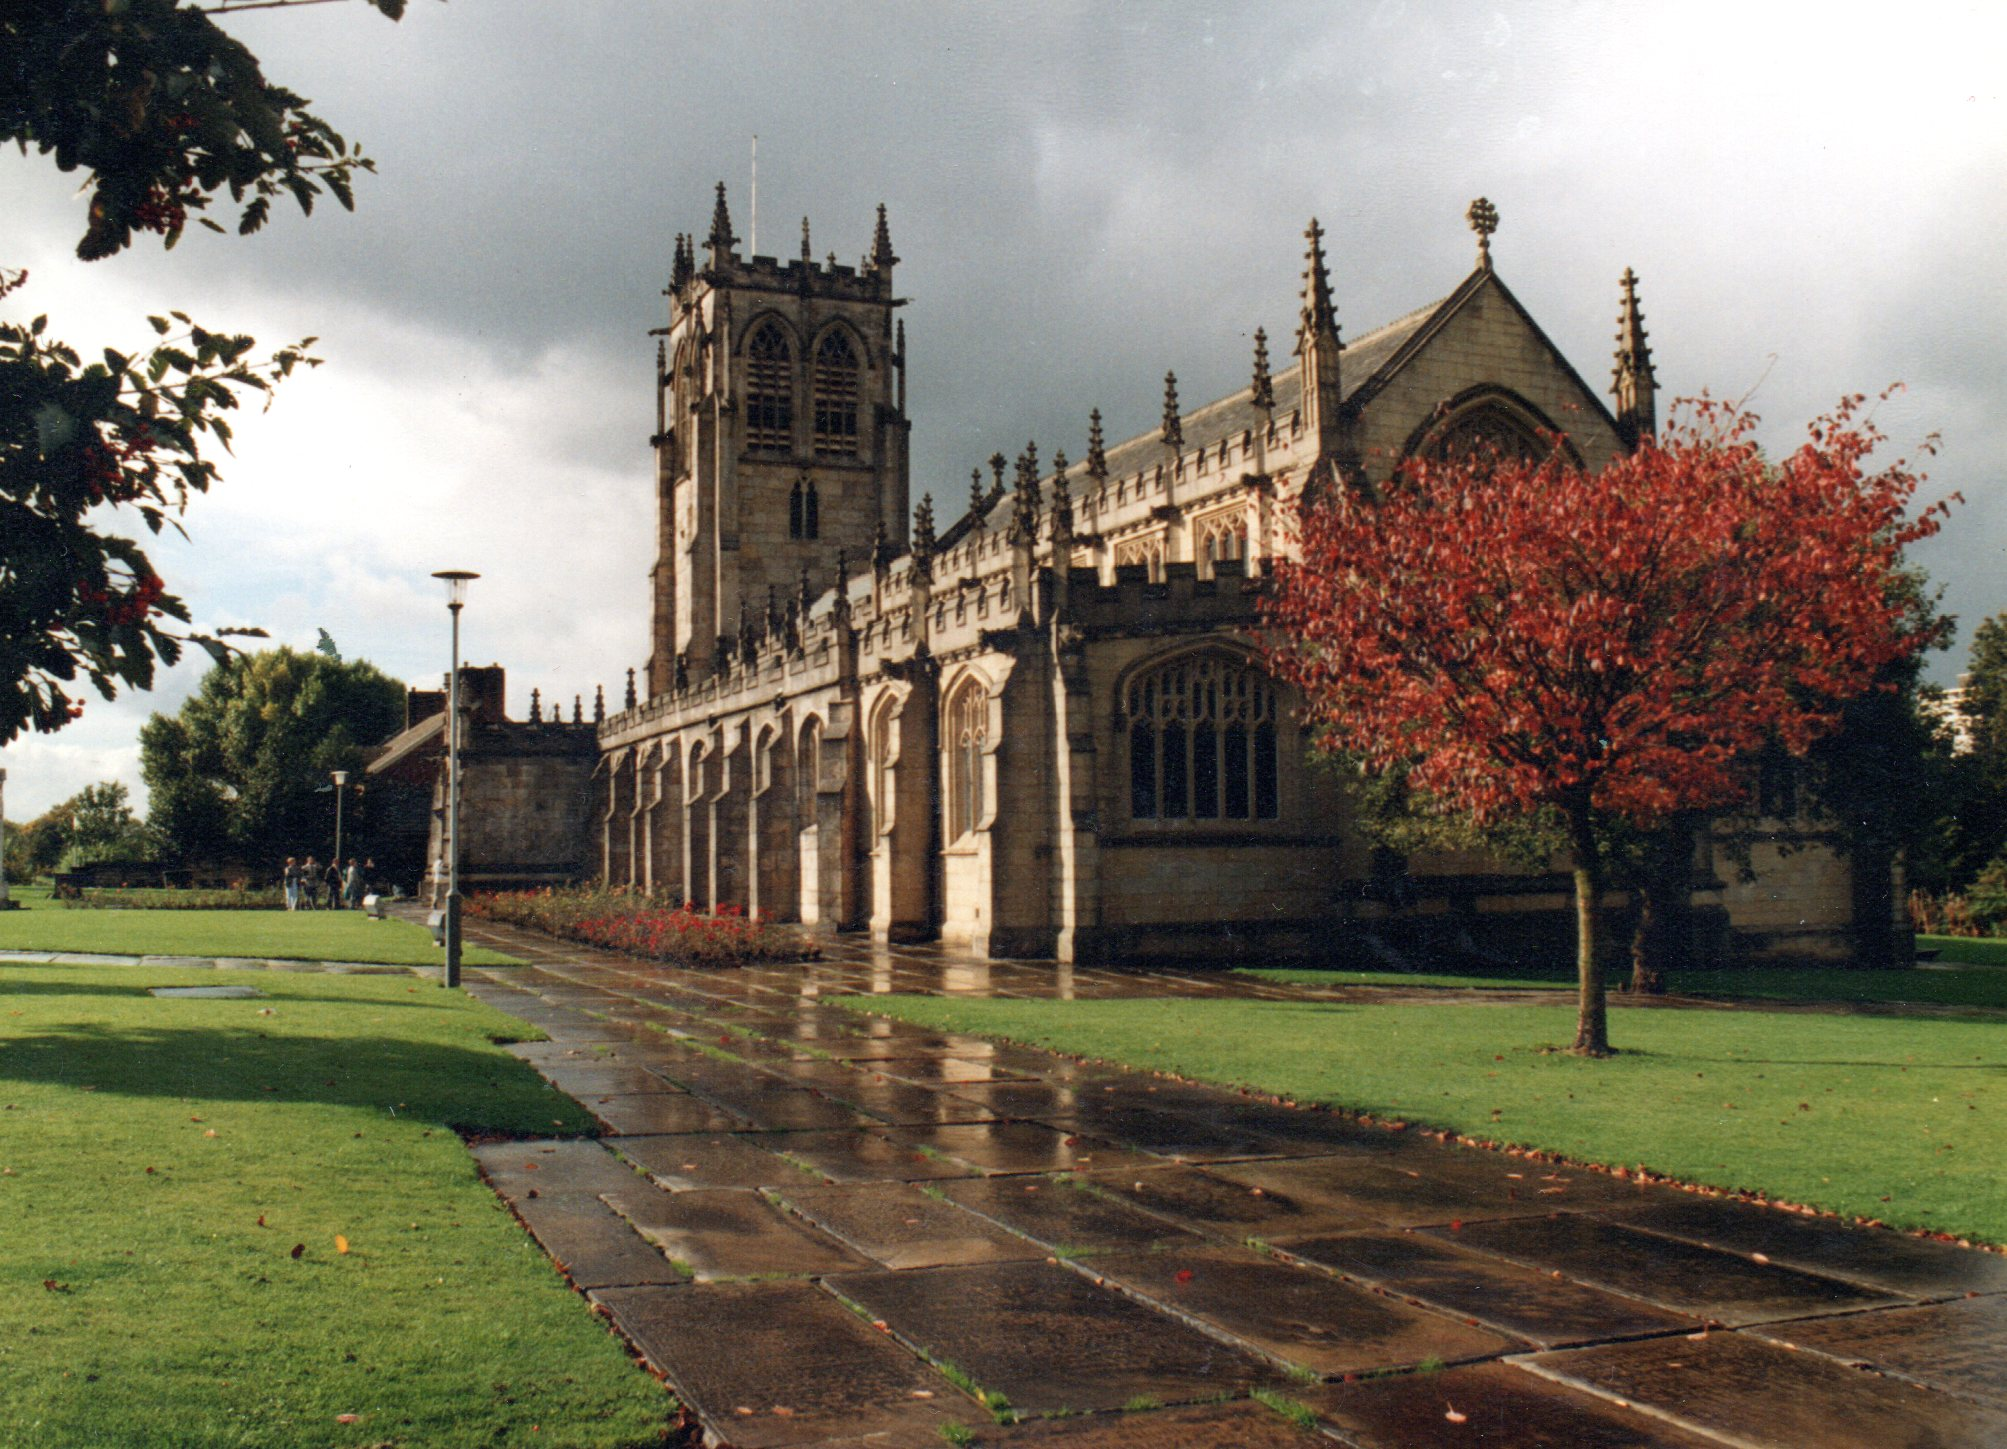 St. Chad's Parish Church, Rochdale